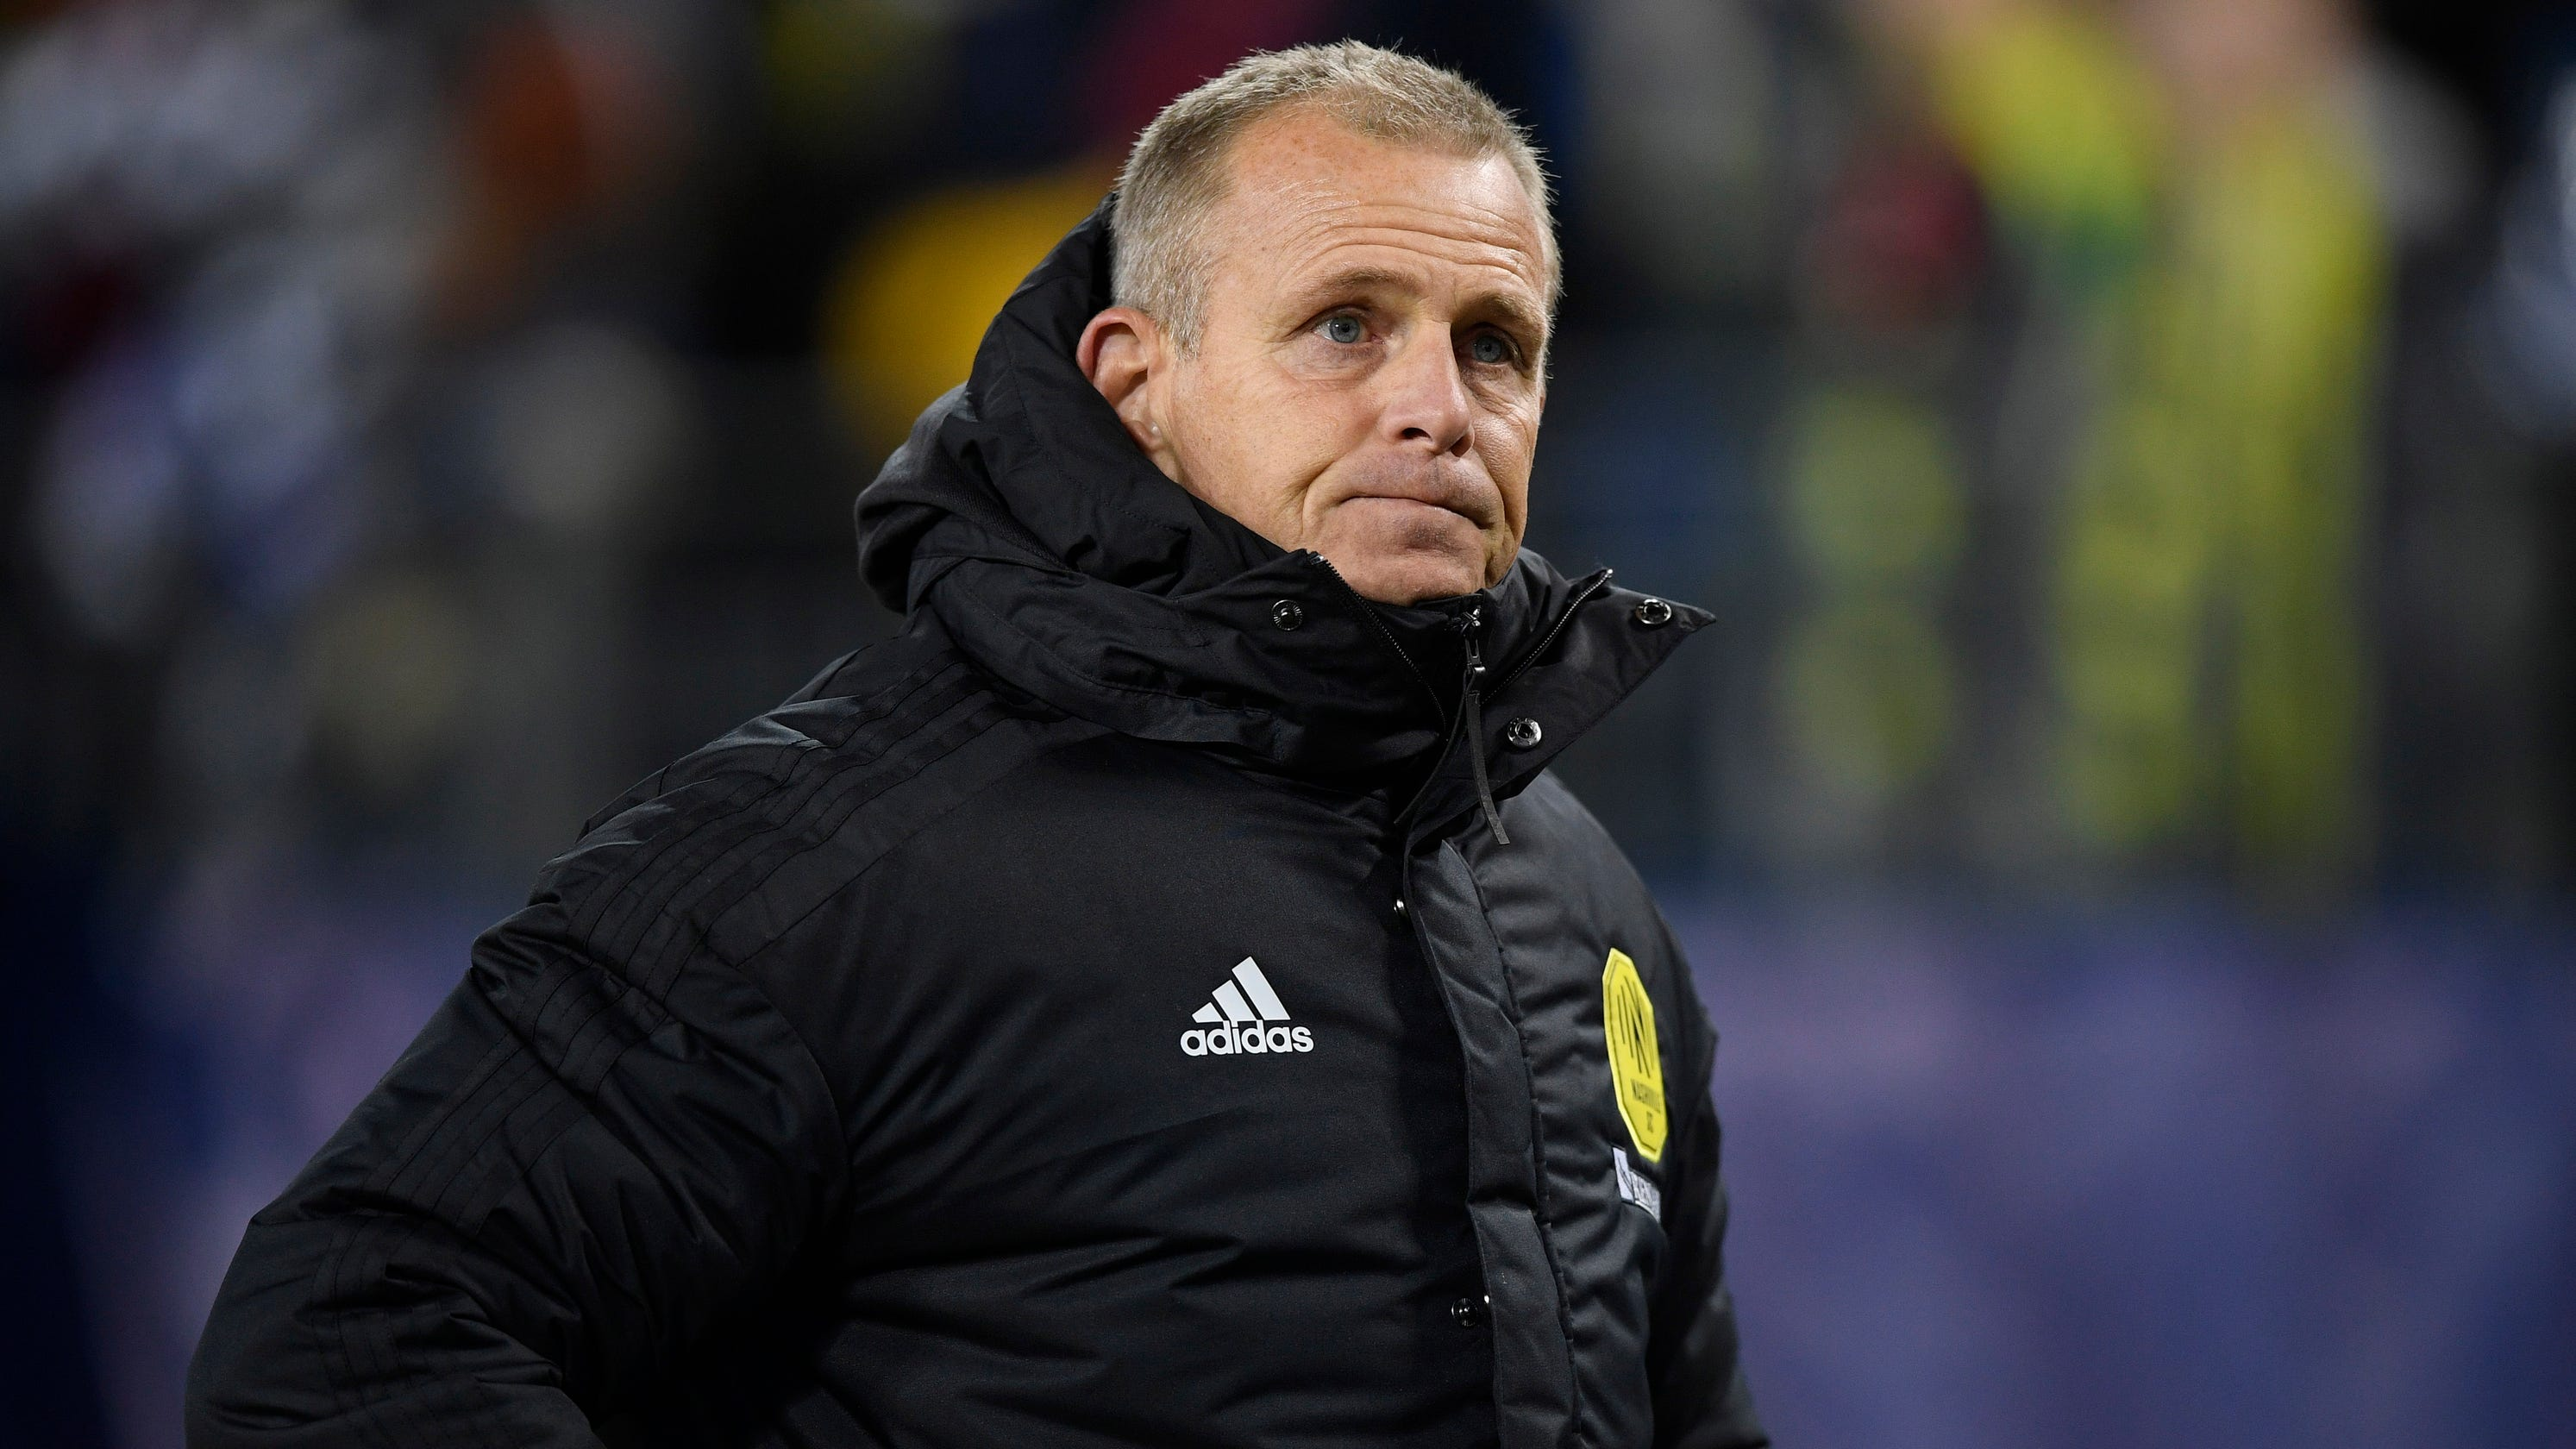 Nashville SC coach Gary Smith discusses COVID-19 test scare, return to sideline on Sunday